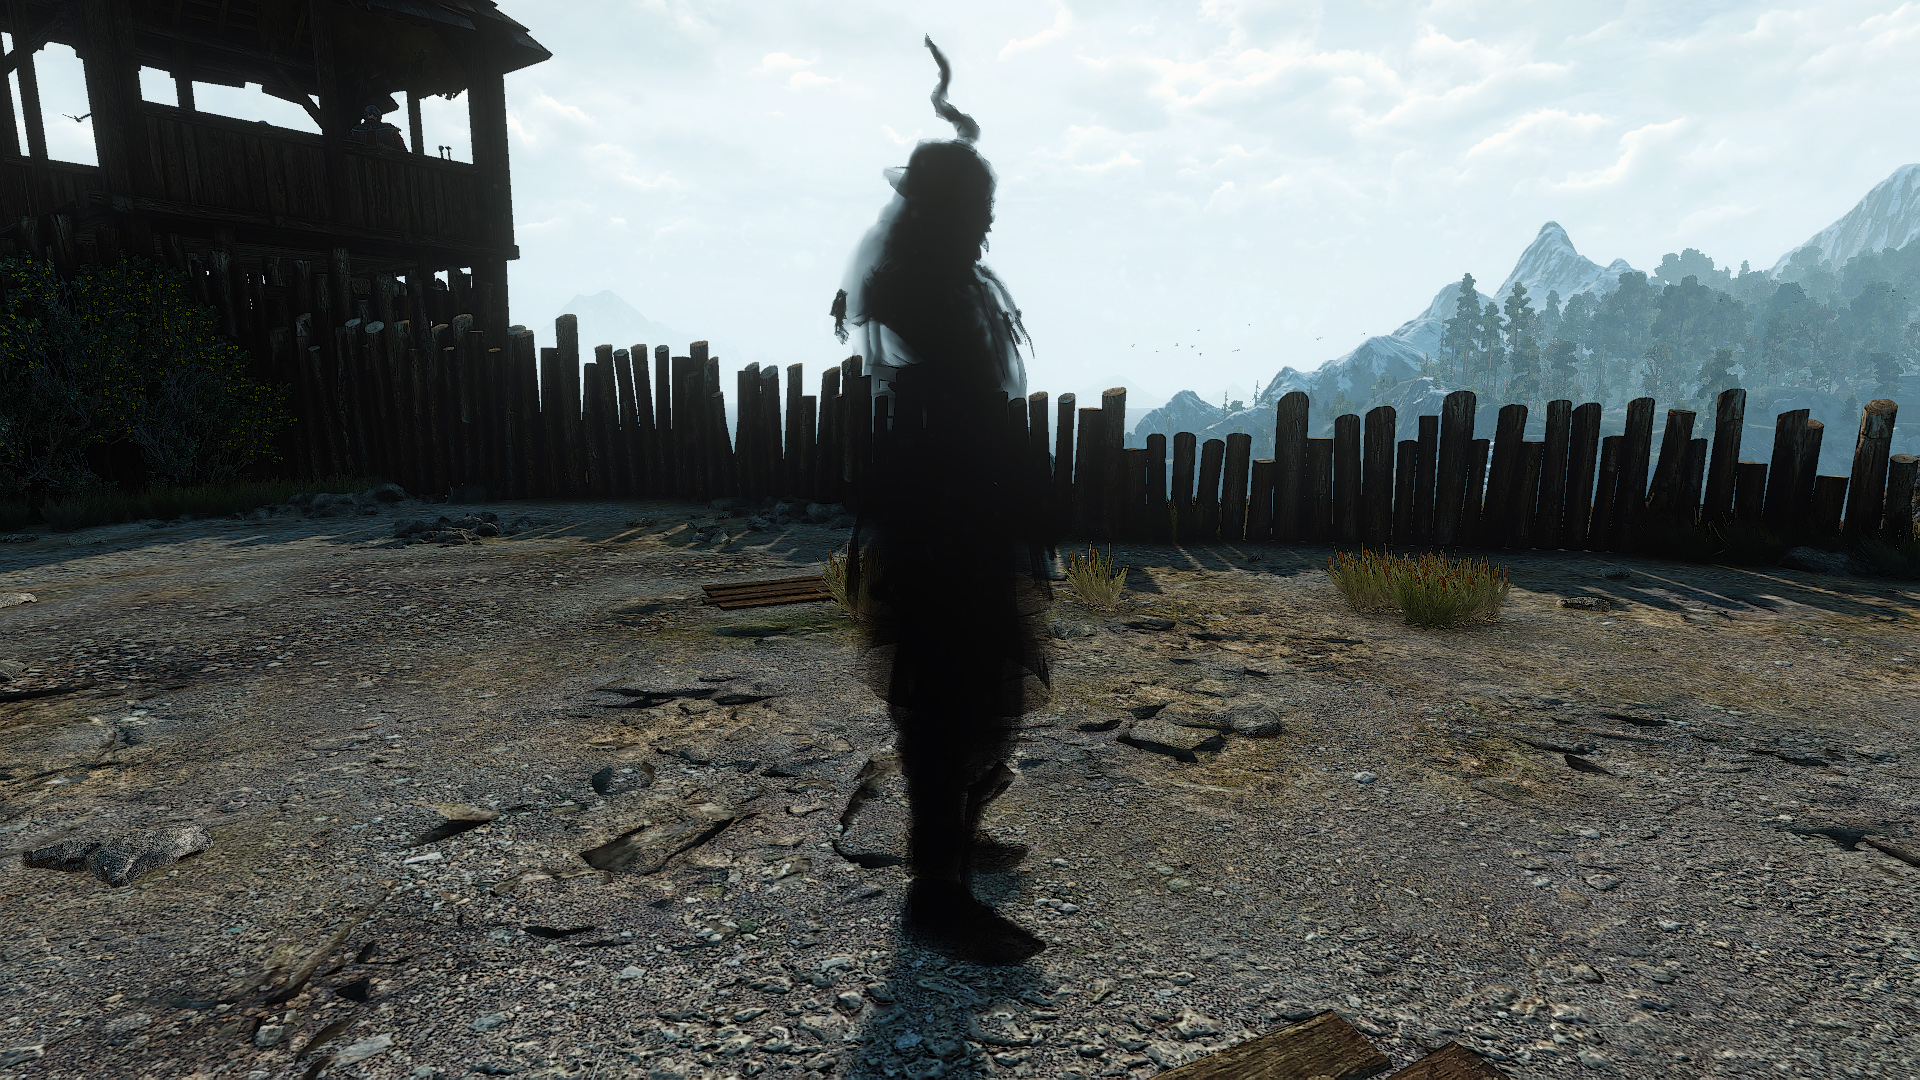 Quest Master of the arena in The Witcher 3: the passage